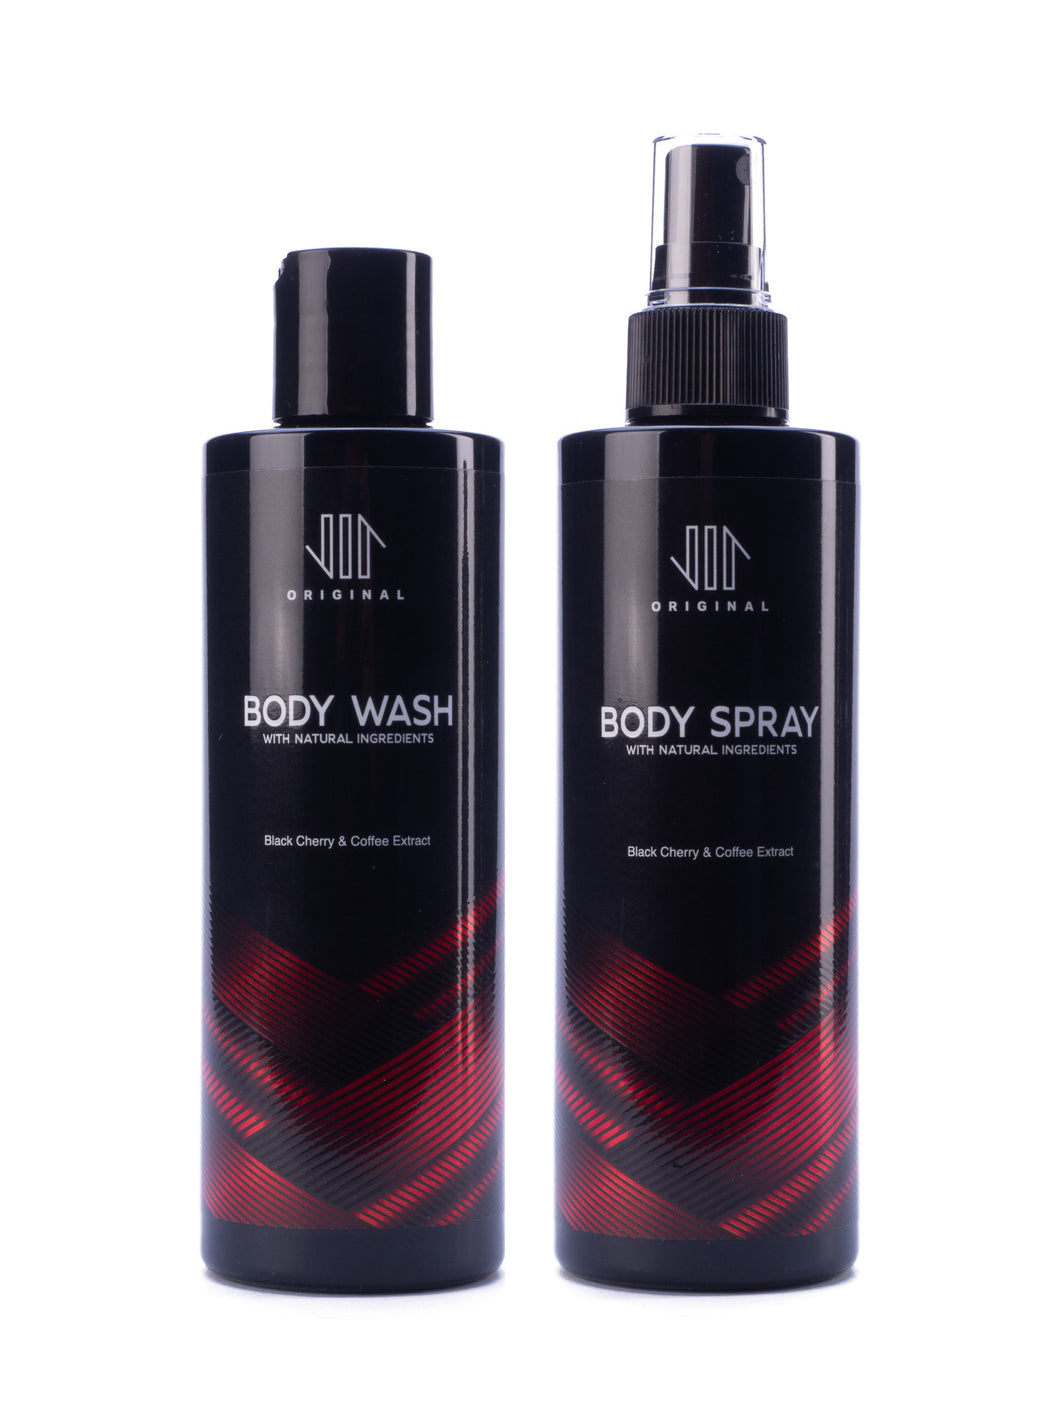 Body Wash, Shower, Body Spray, Fragrance